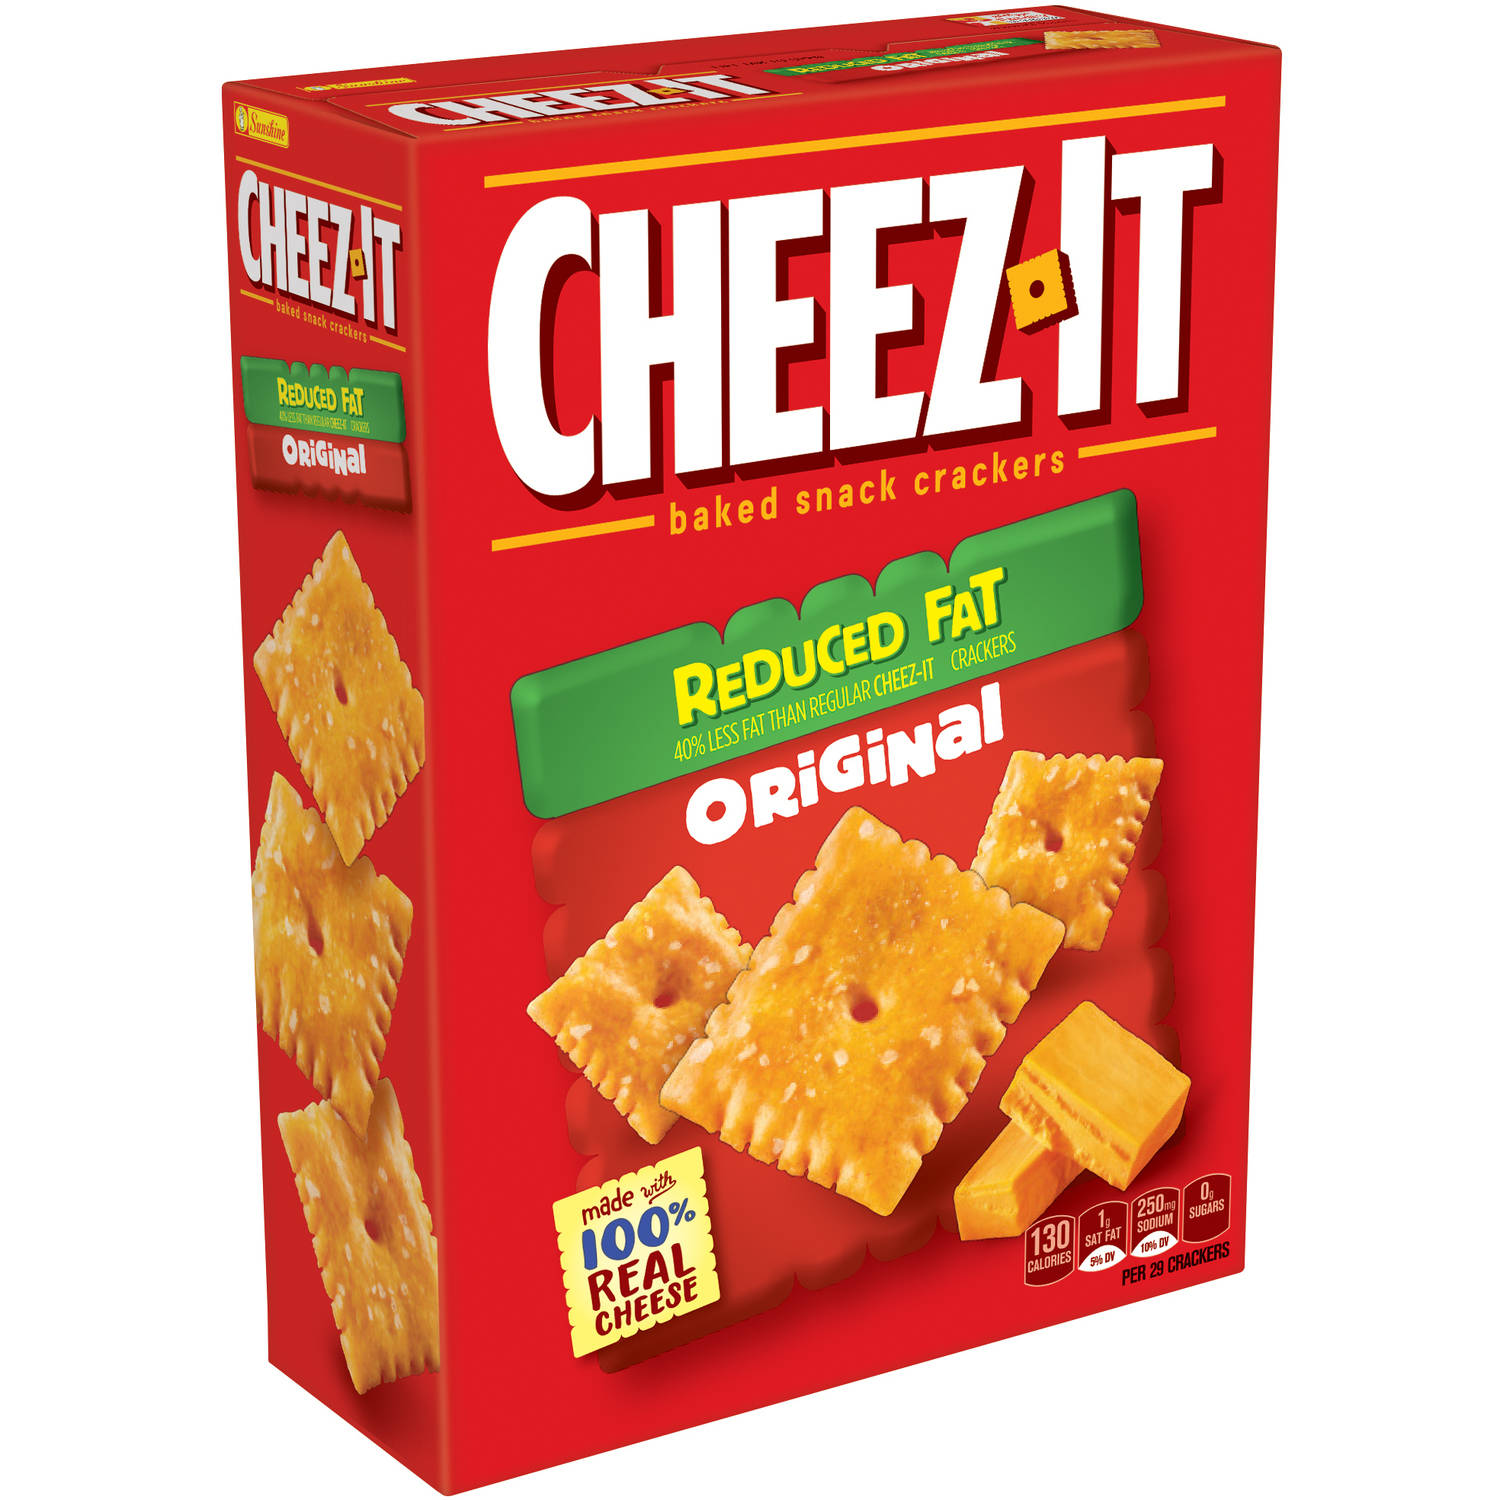 Cheez-It Reduced Fat Original Baked Snack Crackers, 11.5 oz